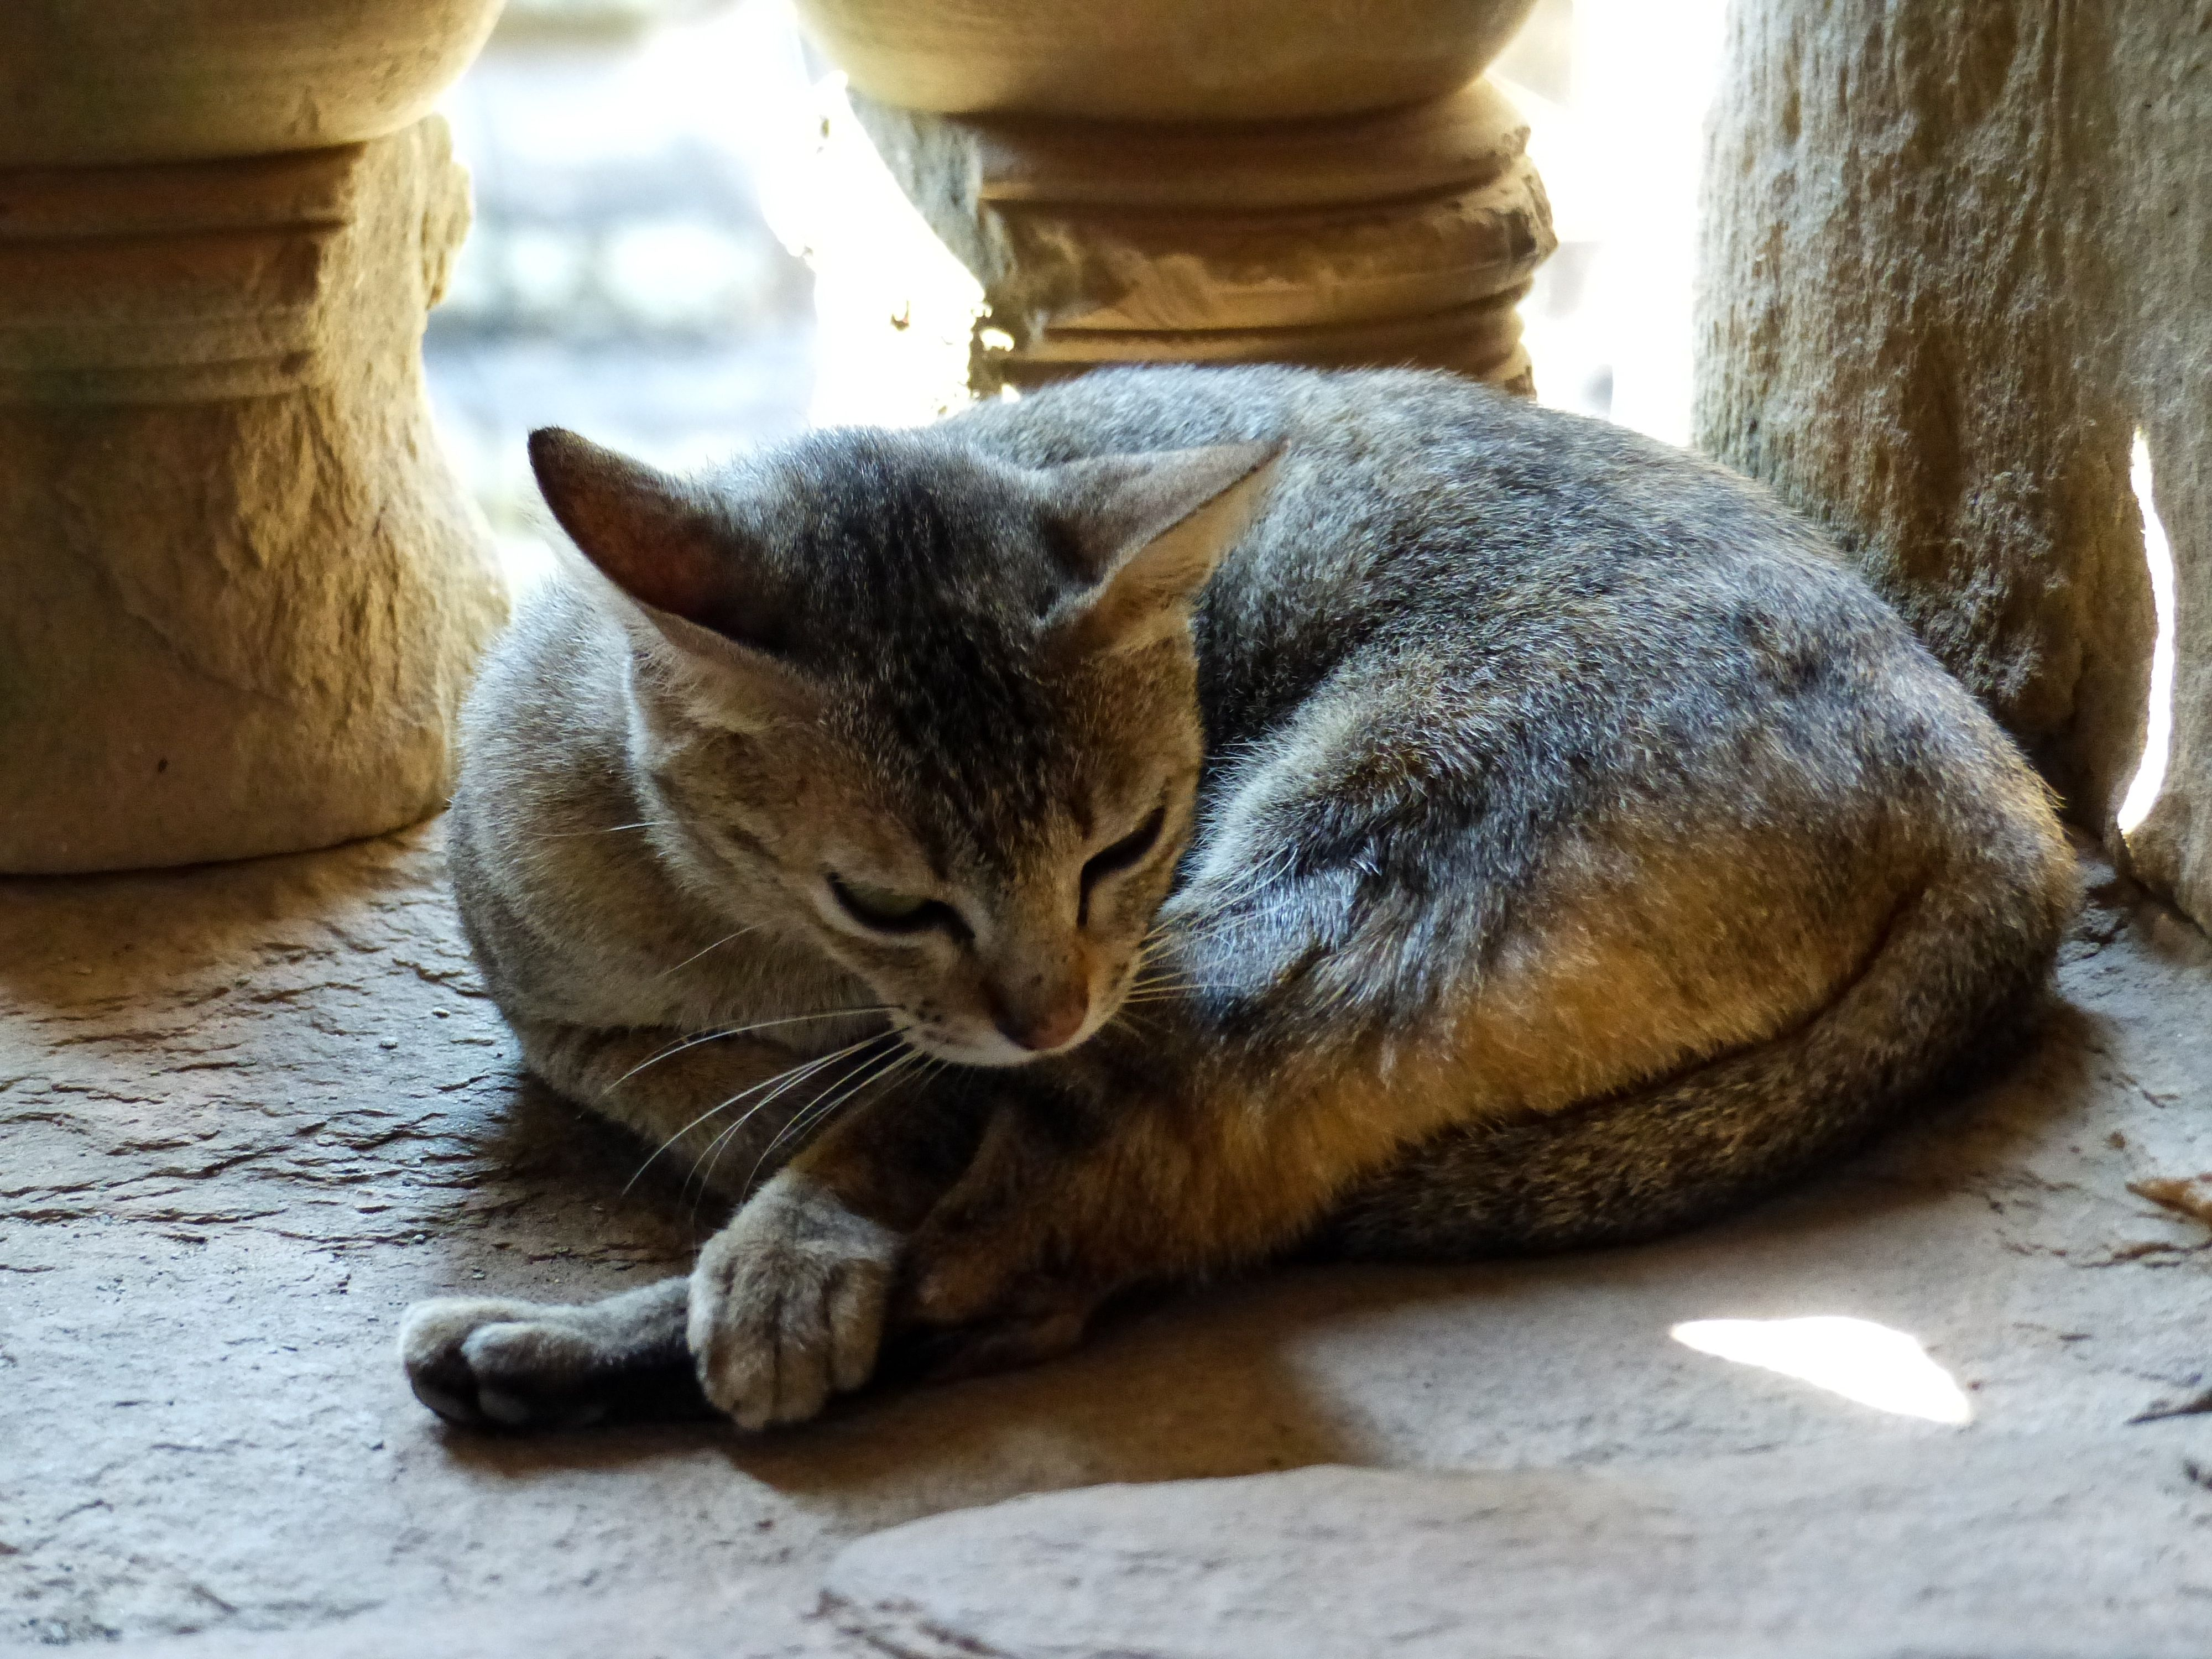 Do You Know The Difference Between A Stray Cat And A Feral Cat A Stray Cat Has Been Socialized To People At Some Point But H Feral Kittens Animals Feral Cats